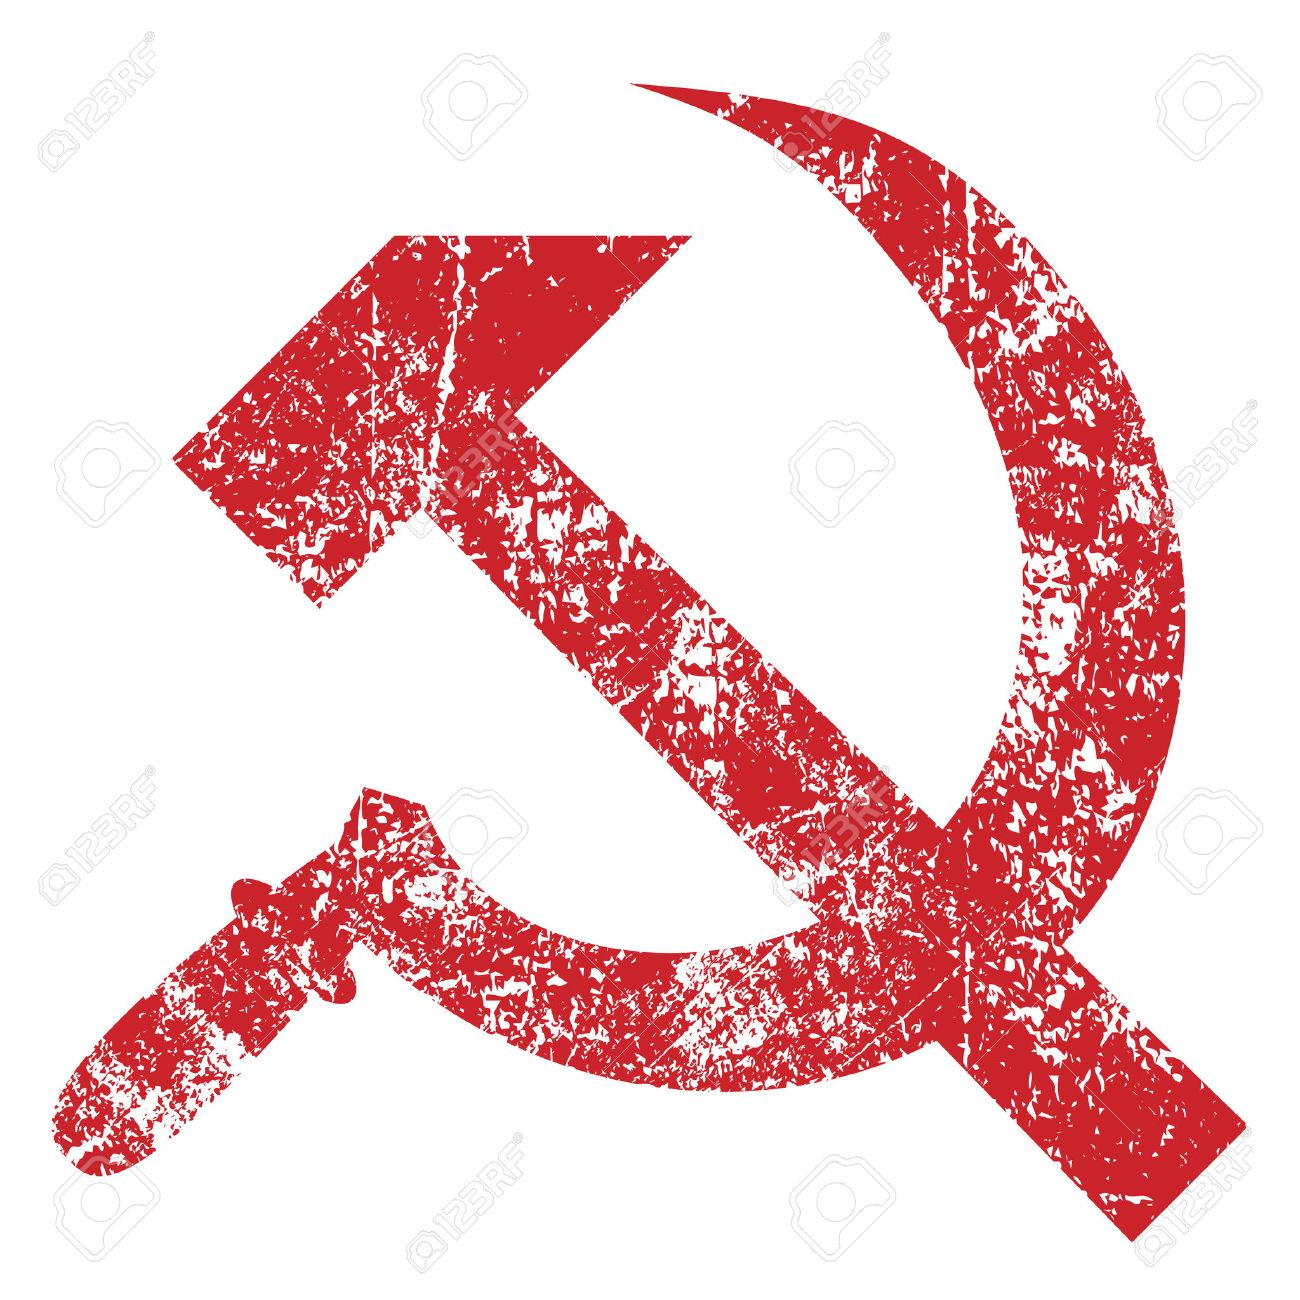 Grunge hammer and sickle isolated on white background, vector illustration - 29860931